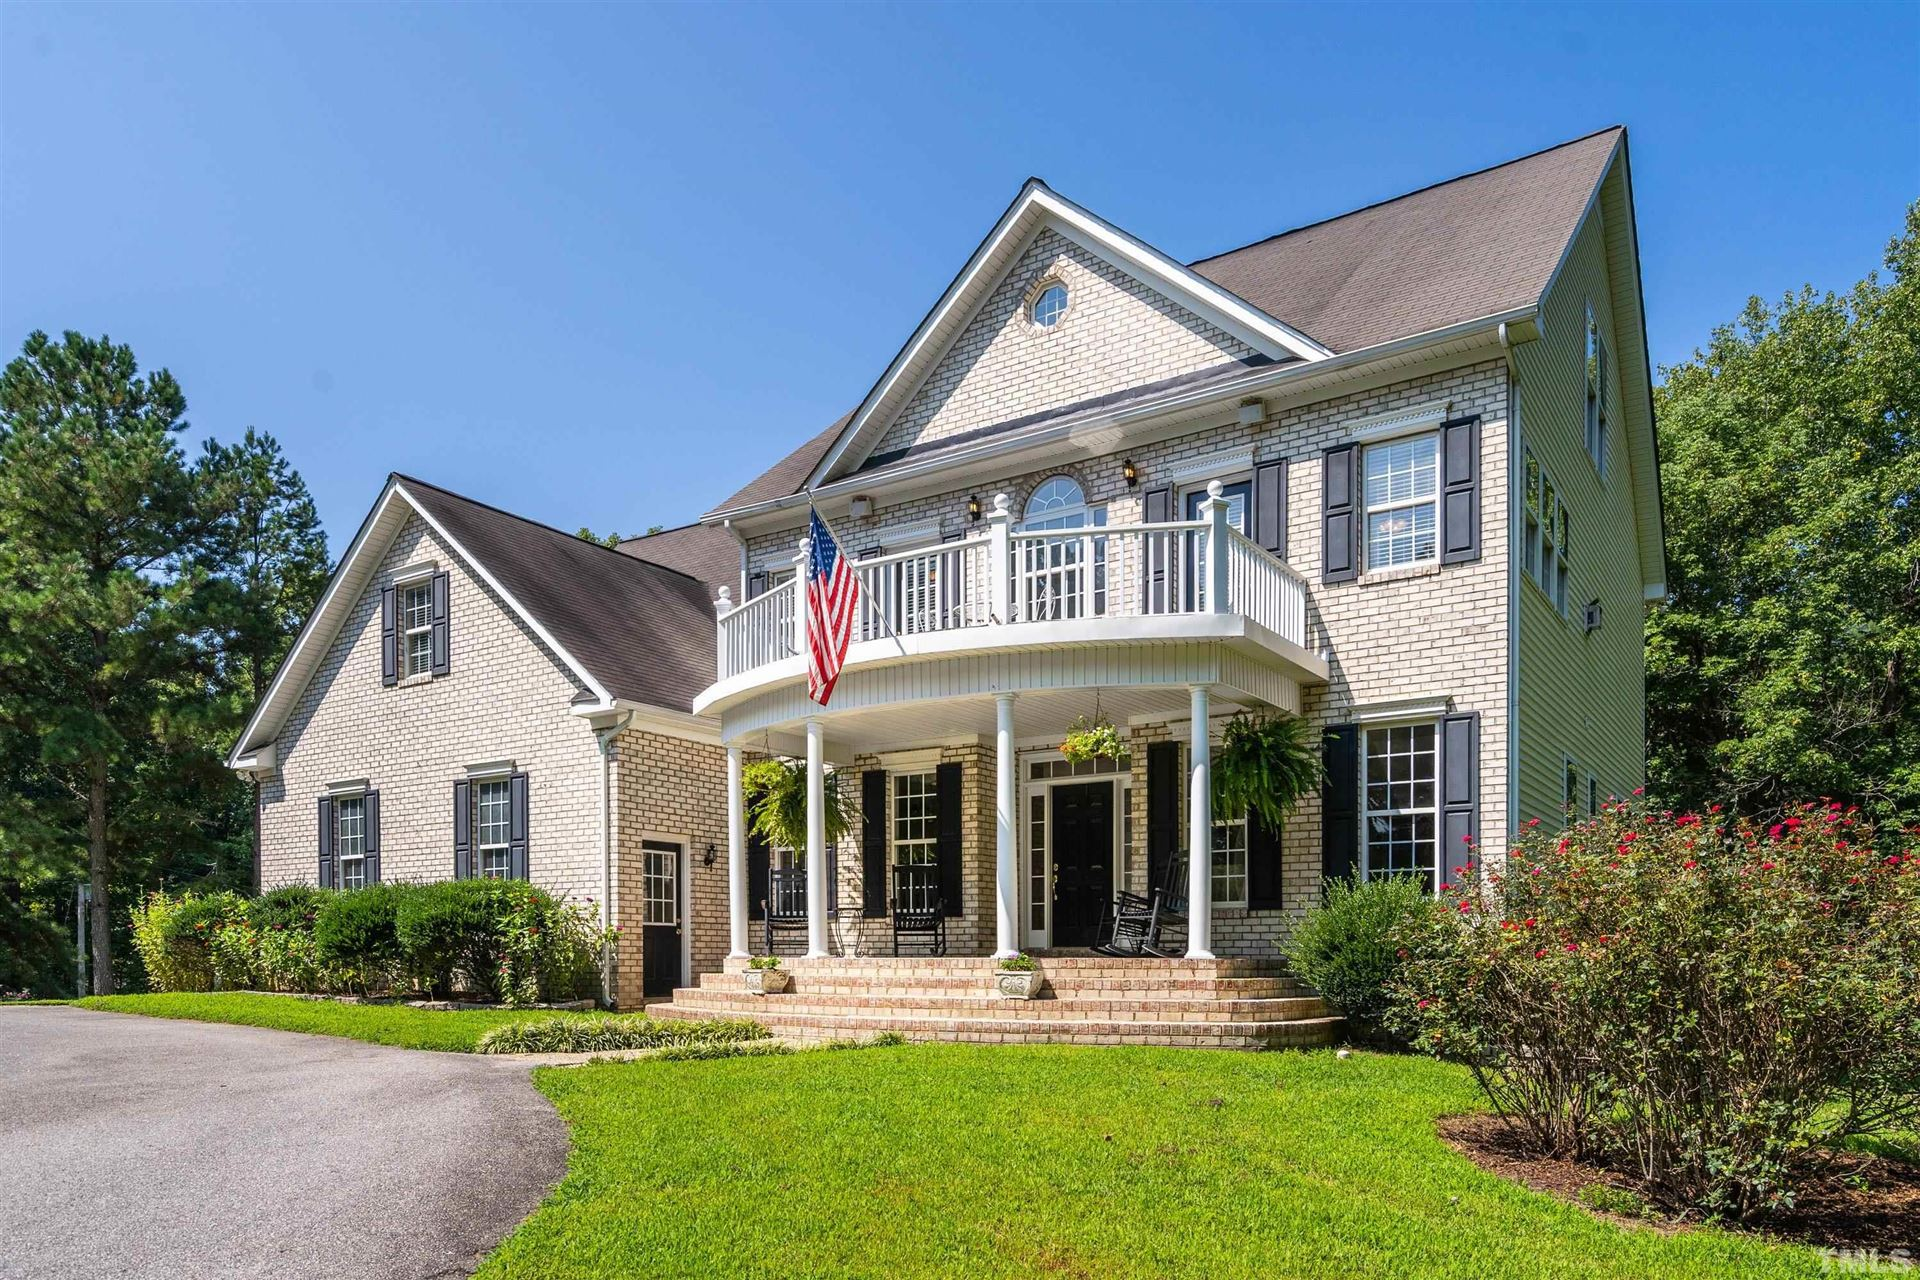 Photo of 106 North Pastures Trail, Franklinton, NC 27525 (MLS # 2400143)